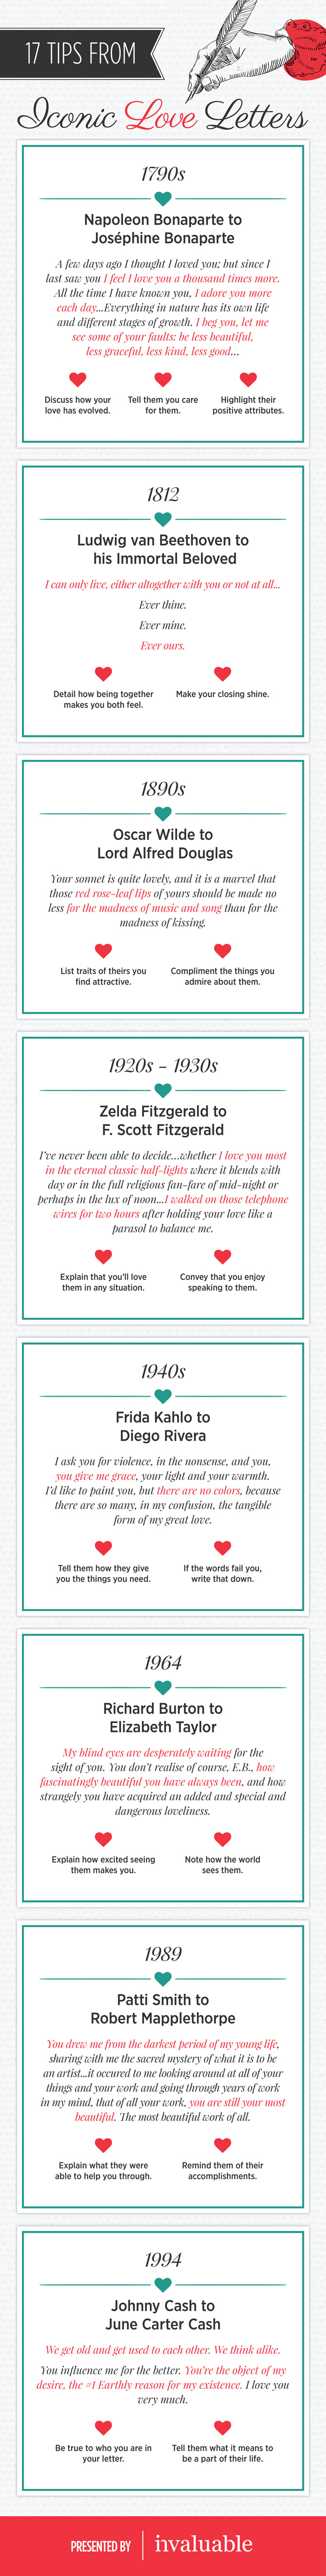 The Art of Writing Love Letters: 17 Tips from Iconic Examples - Infographic